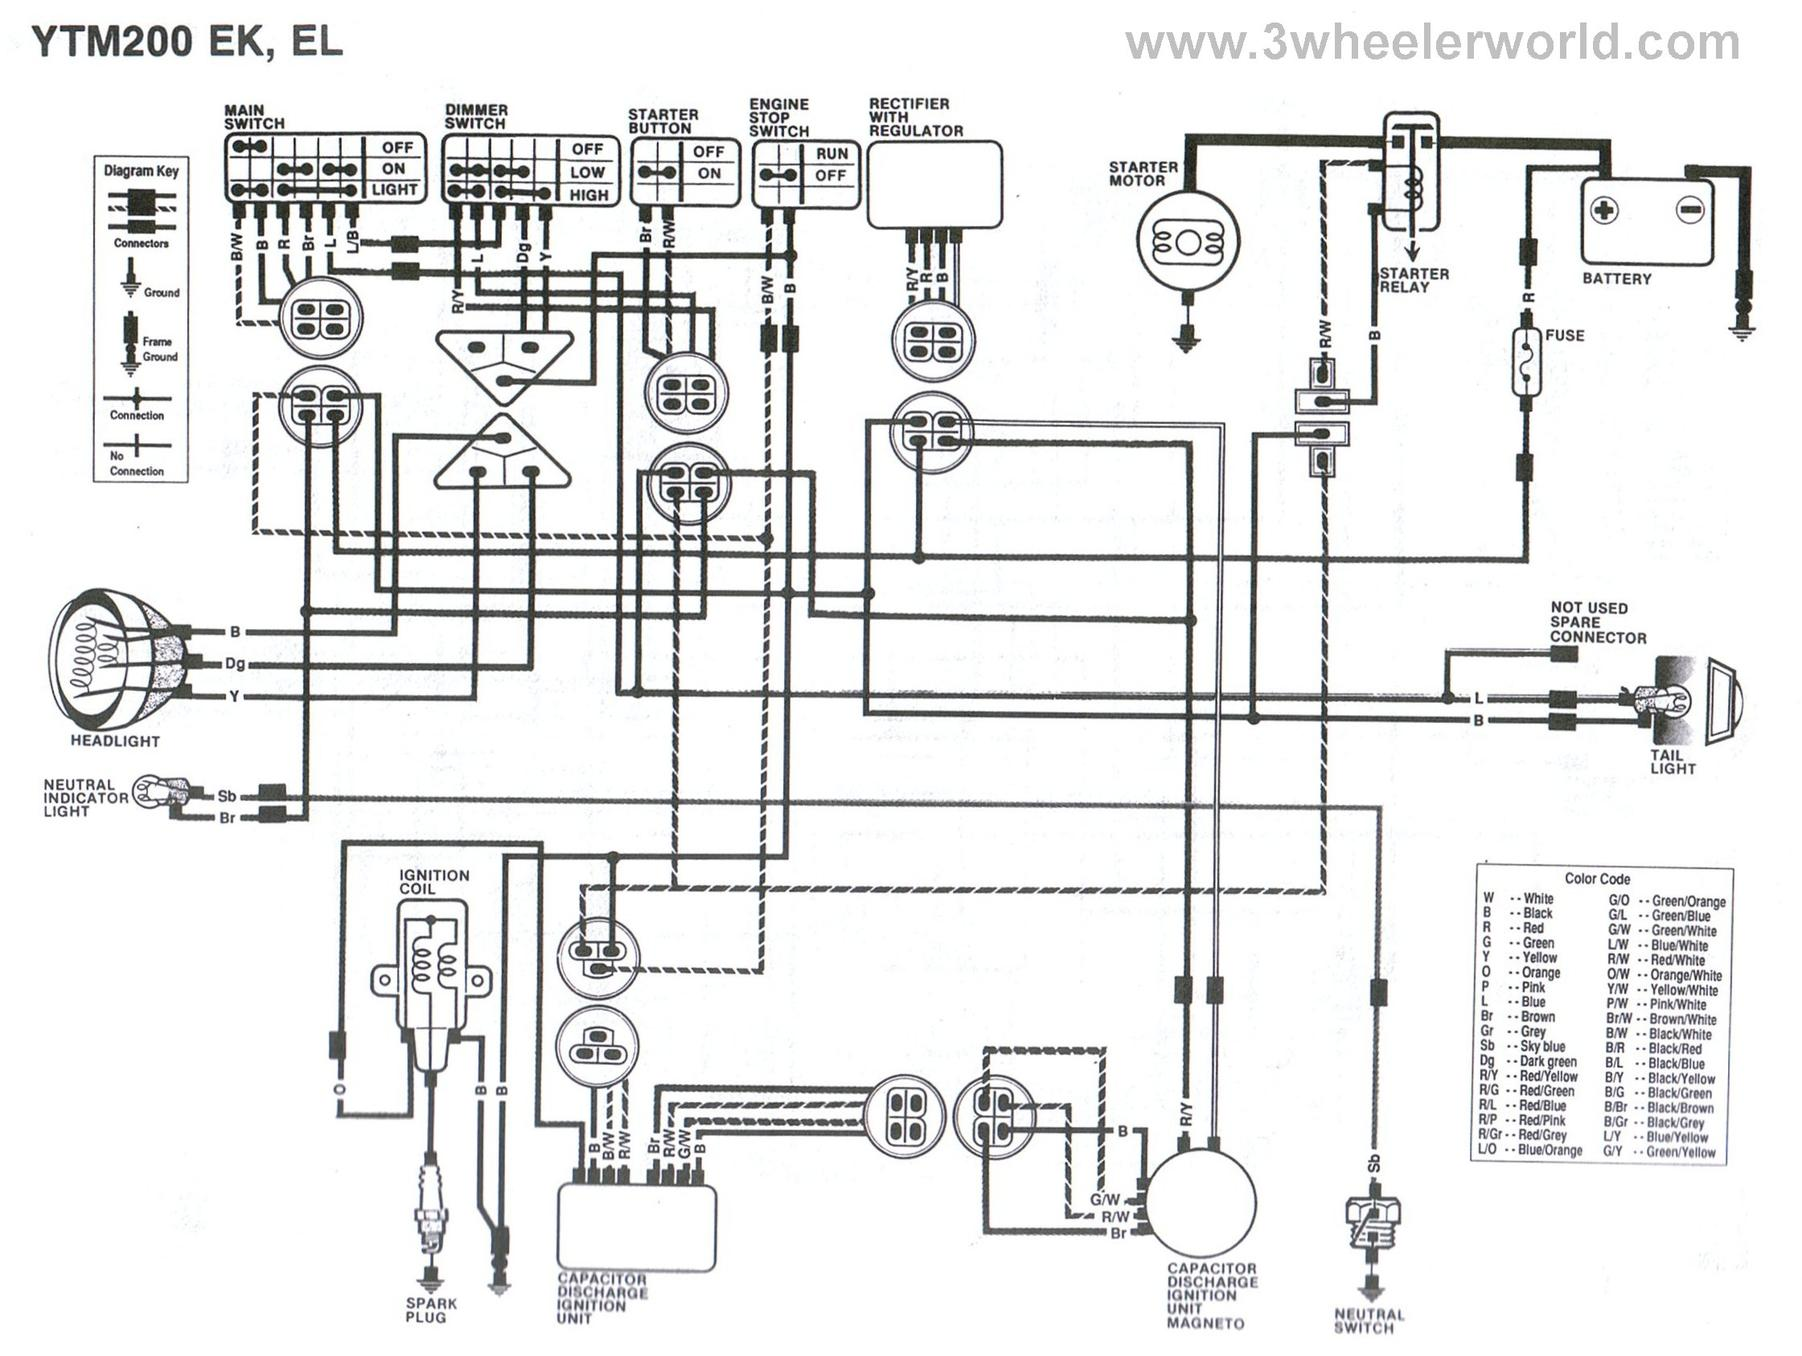 Kawasaki 4 Wheeler Wiring Diagram, Kawasaki, Free Engine